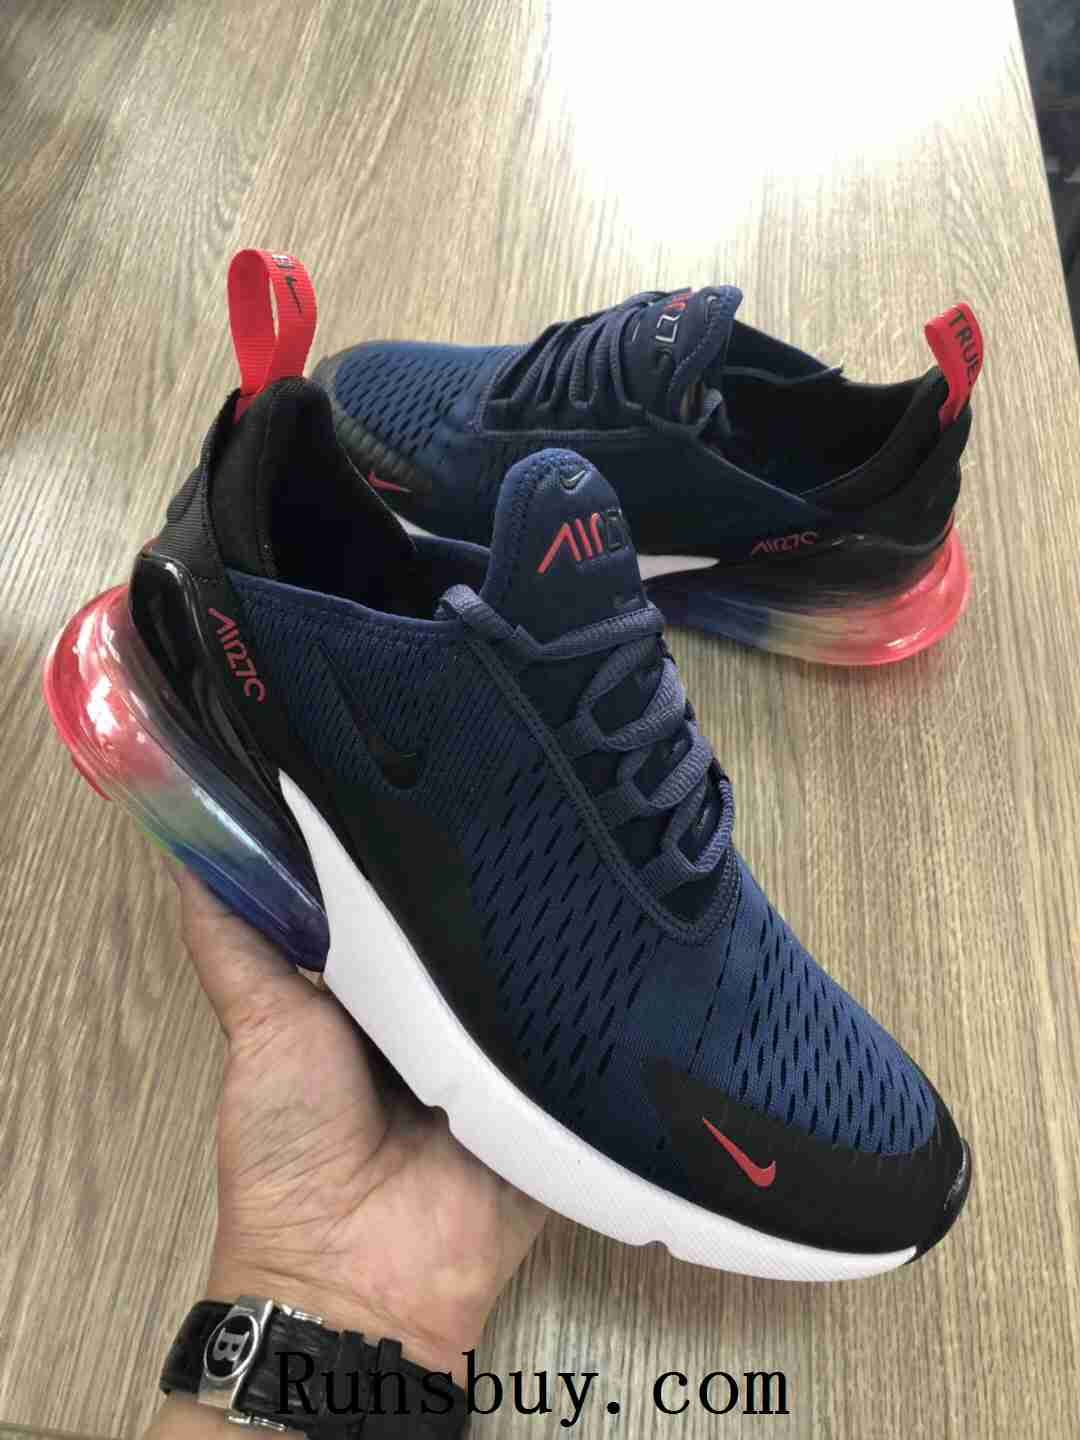 new styles d7d04 aaf70 Nike Air Max 270 Betrue Blue Black Rainbow Women Men Running Shoes